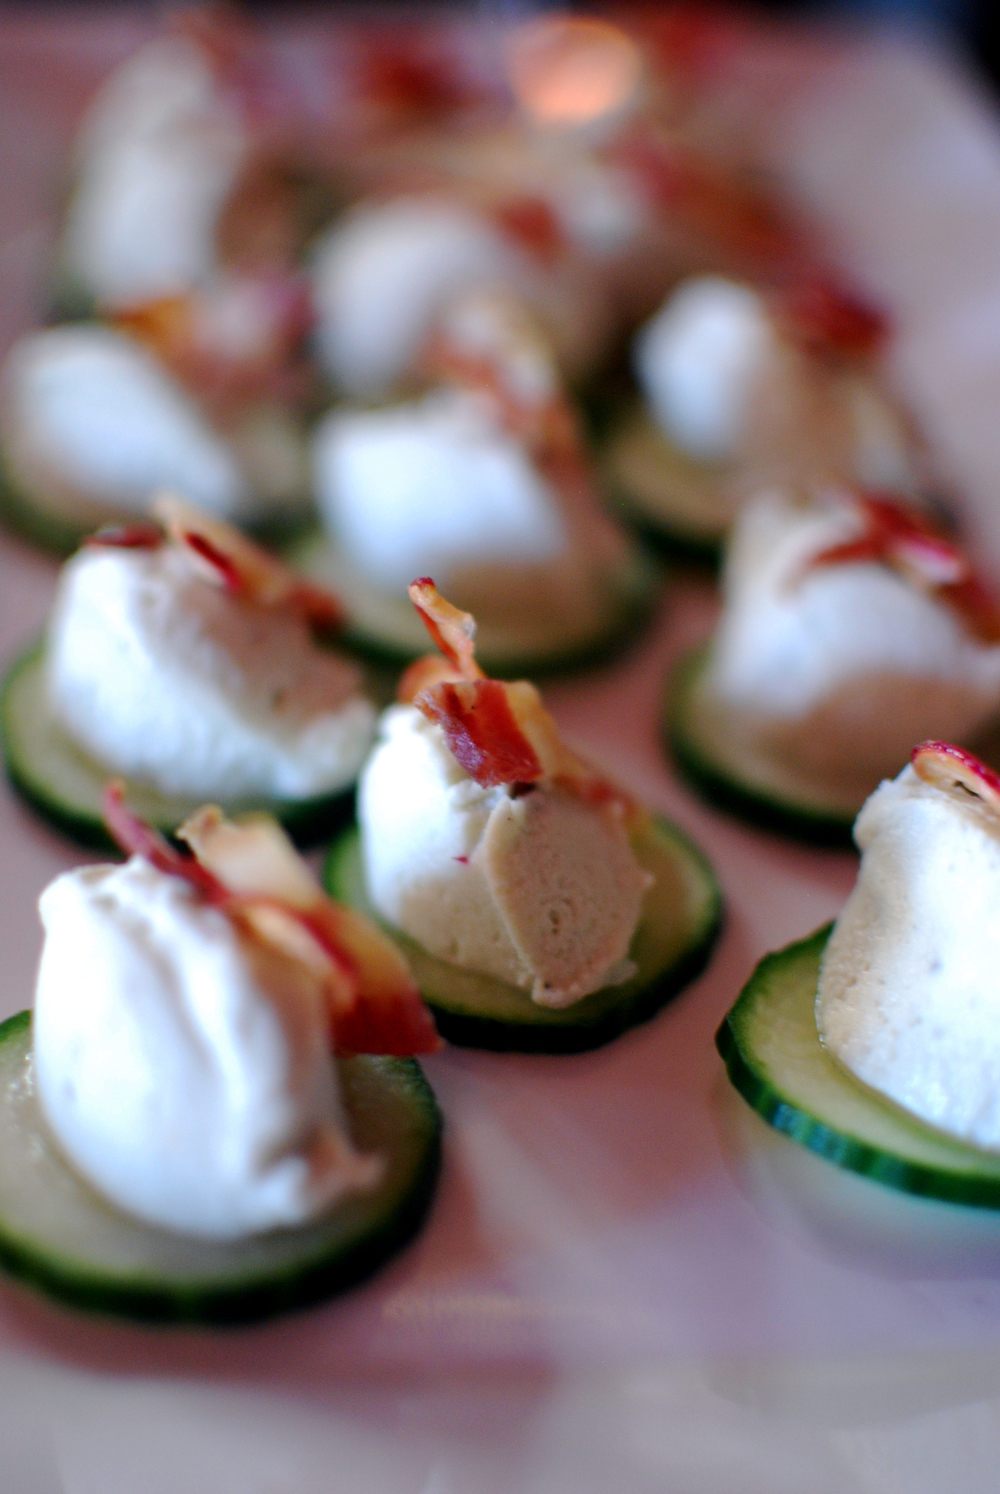 A smoky blue cheese and cucumber canapé with candied radish and bacon served during a beer dinner at South Kitchen and Bar on Tuesday, July 29, 2014 (André Gallant | @andregallant | andrejgallant@gmail.com).